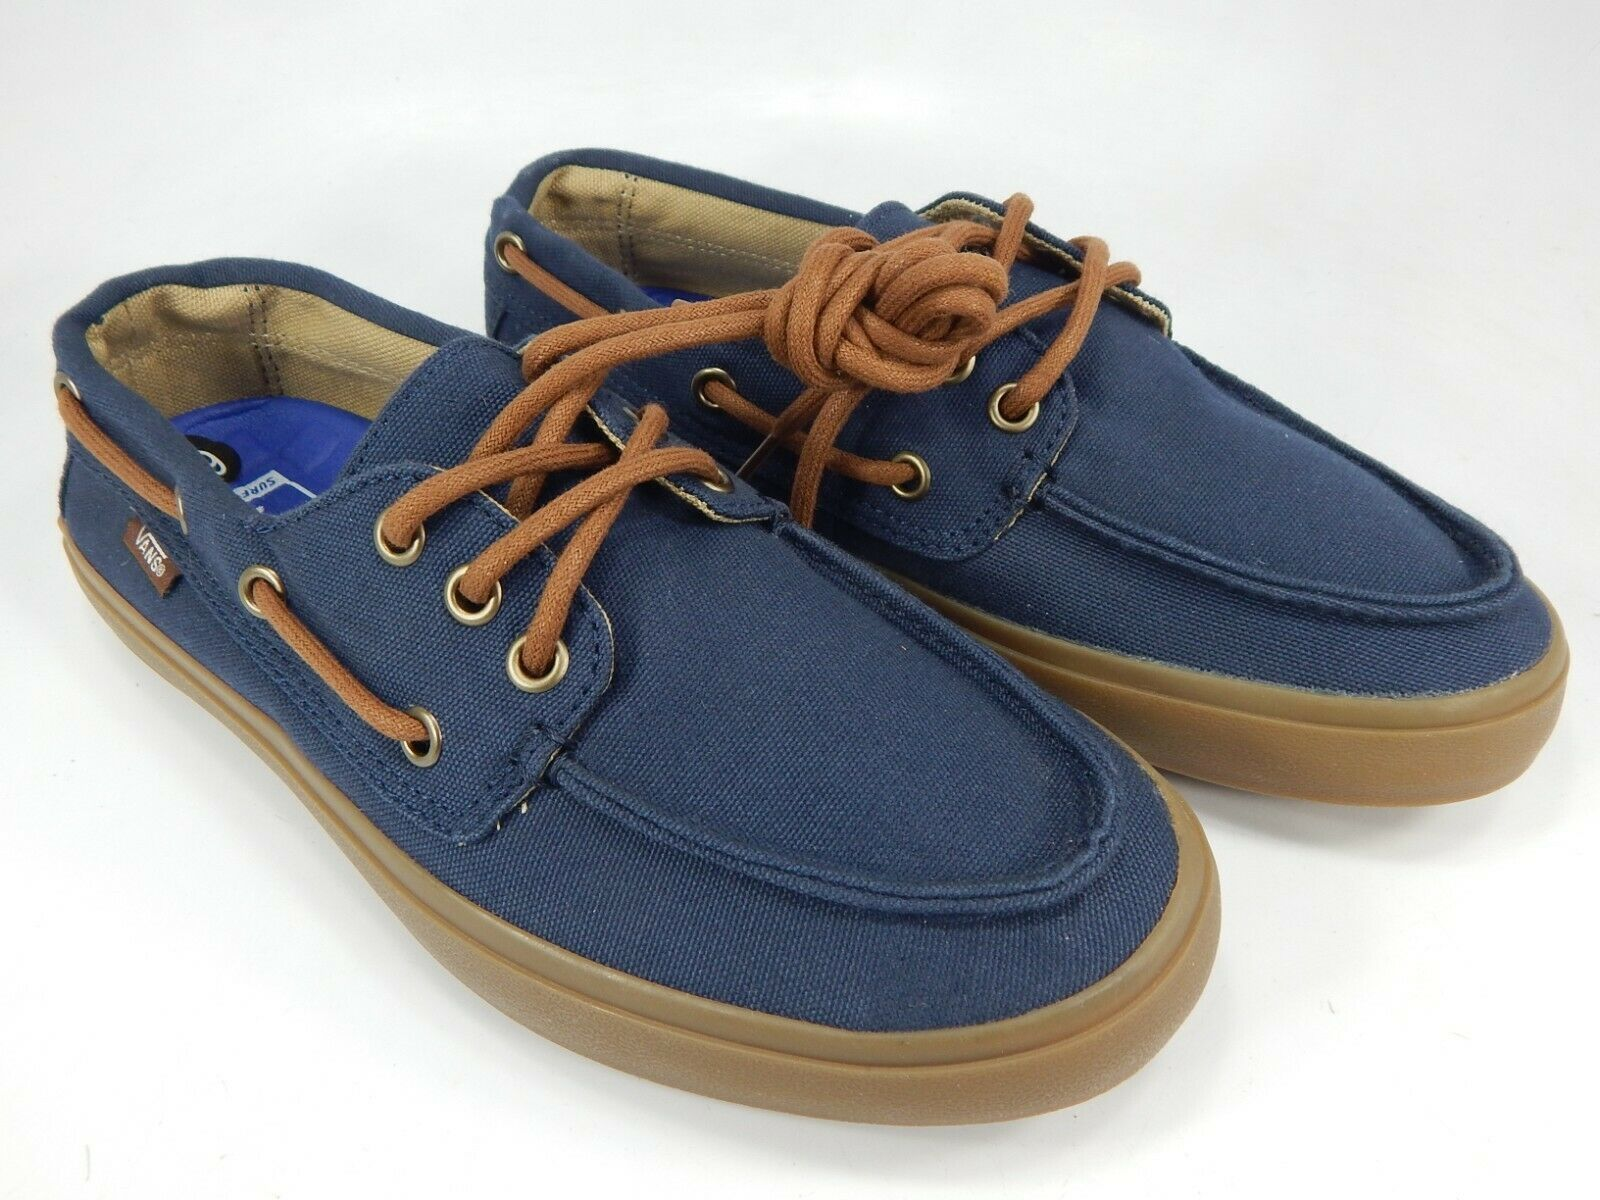 VANS Surf Siders Chauffeur Taille 6.5 M EU and similar items